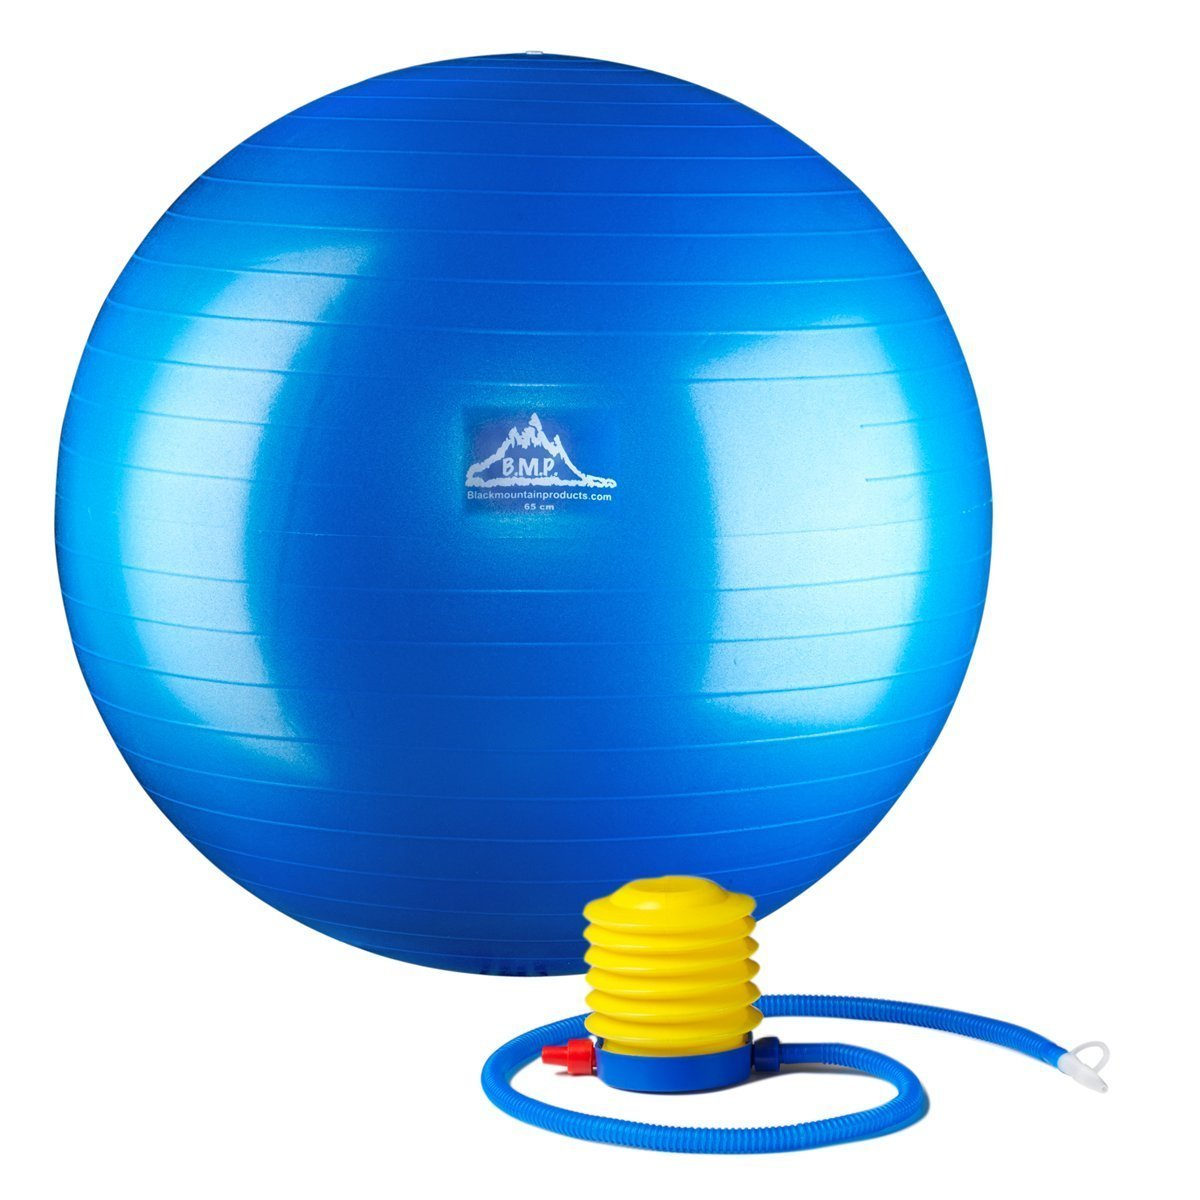 Professional Grade Stability Ball Black Mountain Products